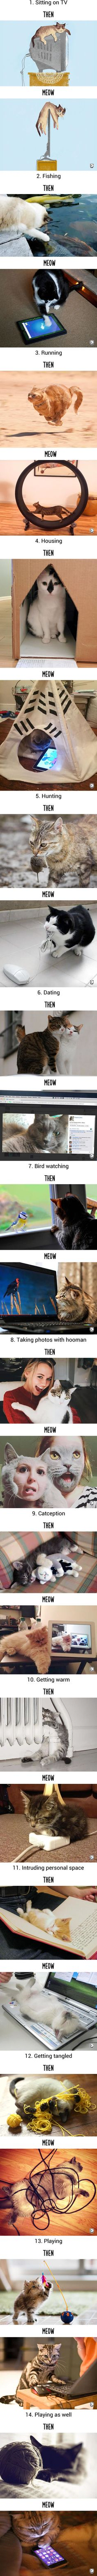 Then vs Meow: How Technology Has Changed Cats' Lives (via 9gag)